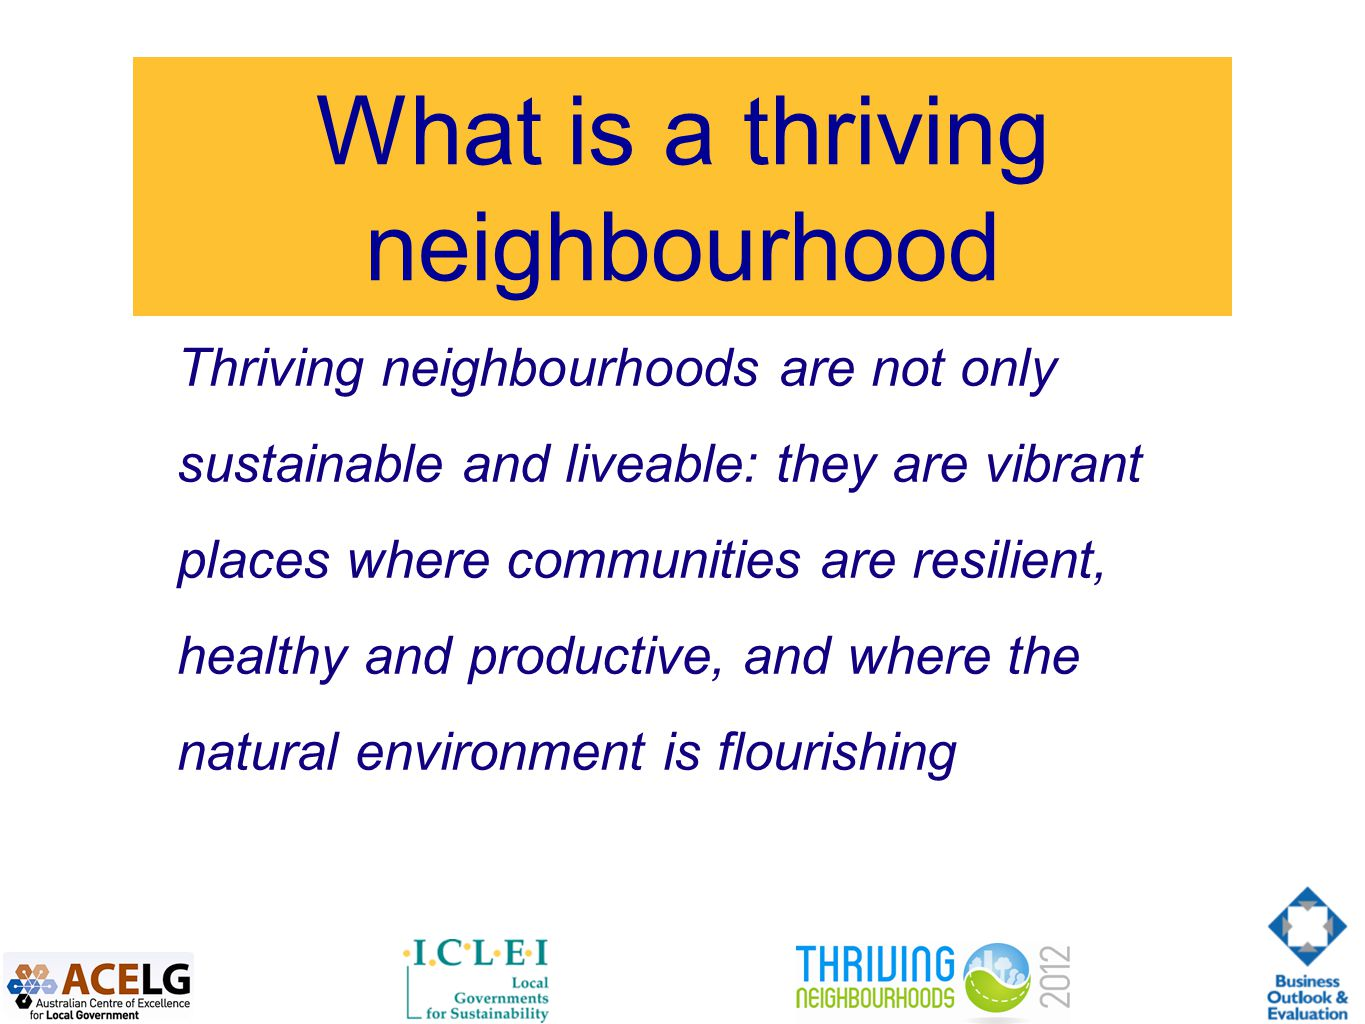 What is a thriving neighbourhood Thriving neighbourhoods are not only sustainable and liveable: they are vibrant places where communities are resilient, healthy and productive, and where the natural environment is flourishing